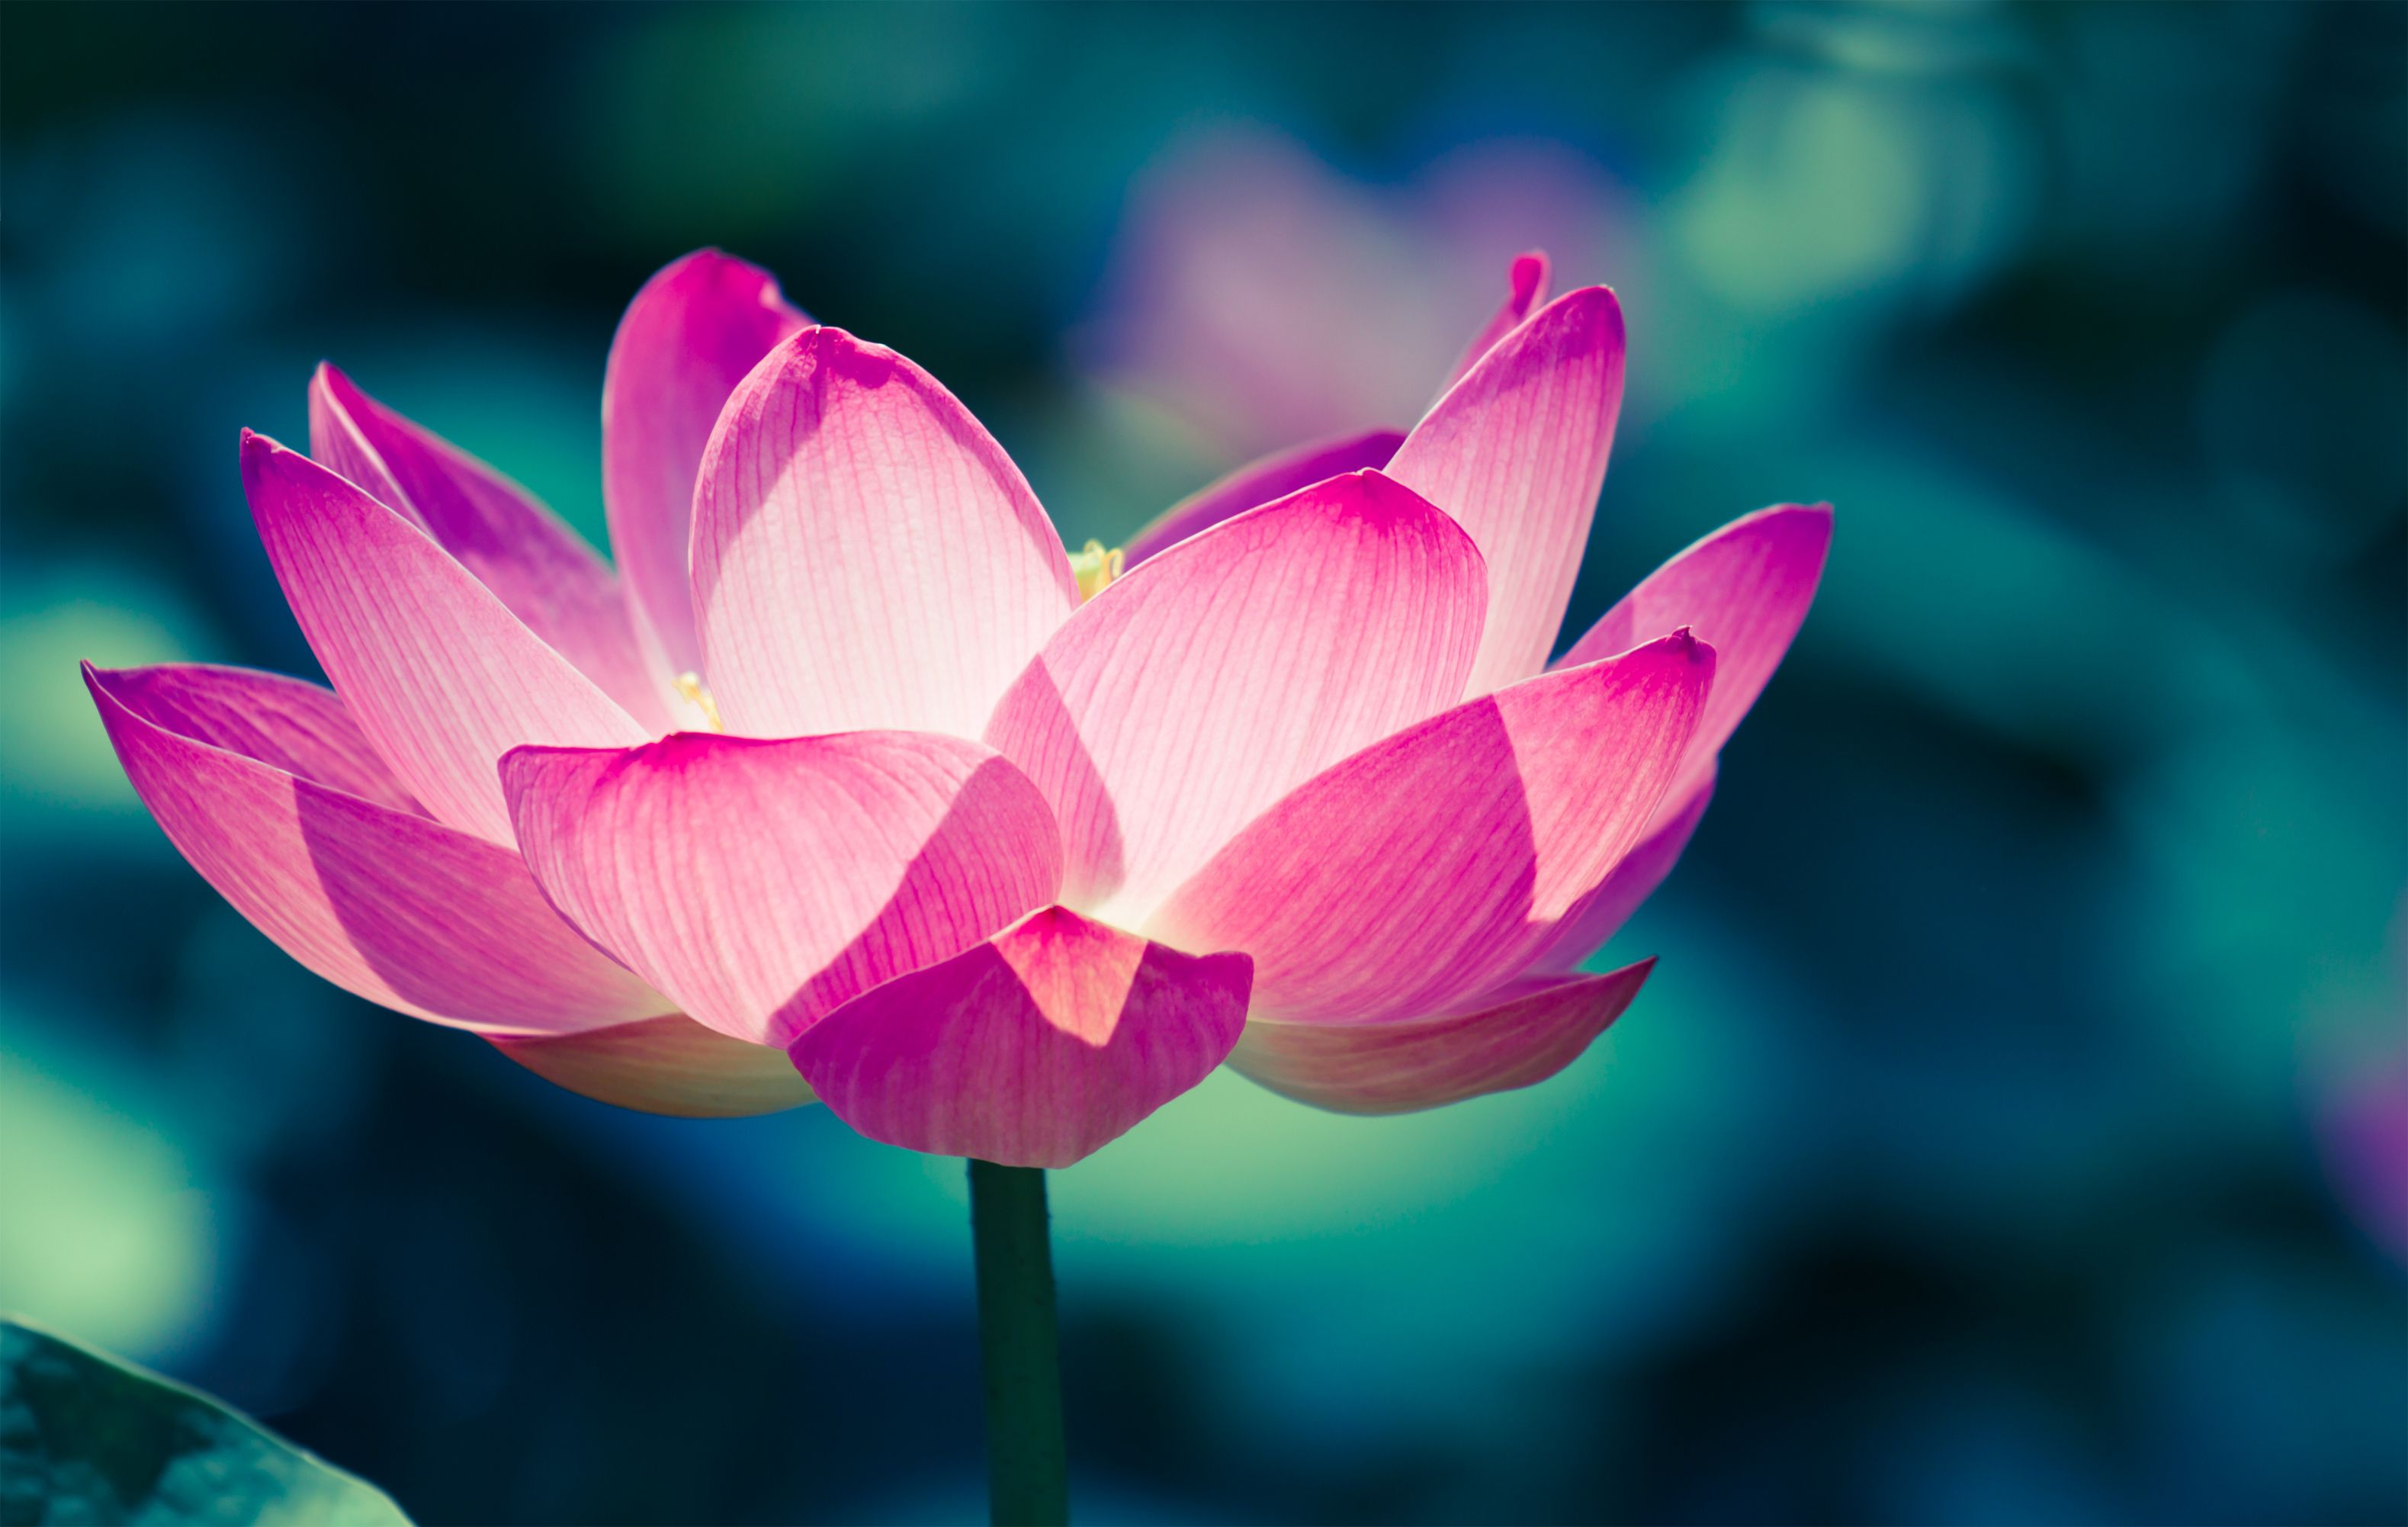 lotus flower meaning  what is the symbolism behind the lotus, Natural flower